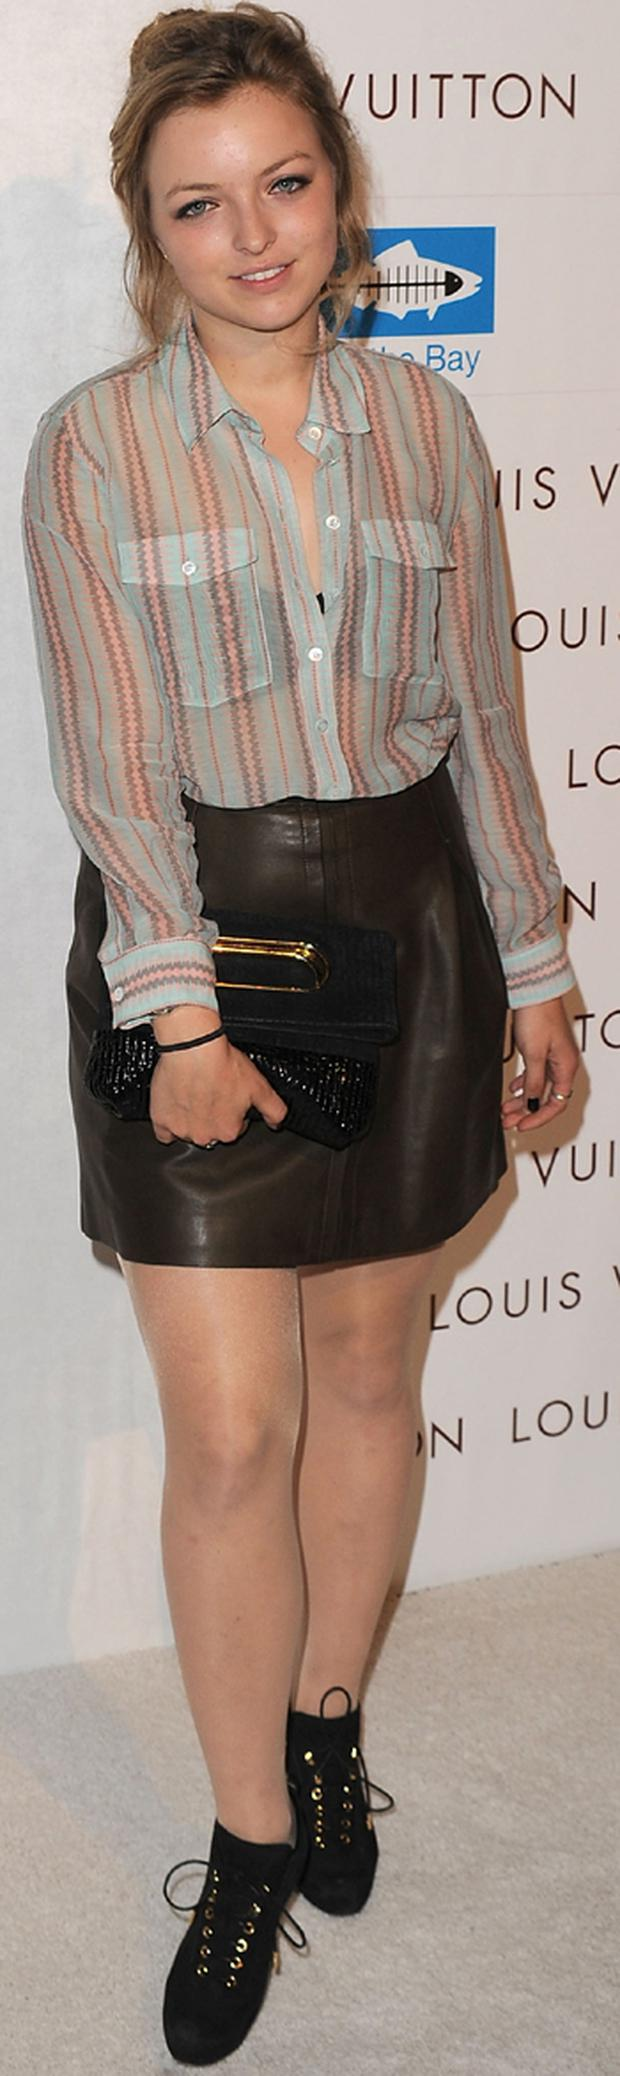 Celebrity Francesca Eastwood wore this sheer shirt with pale hues recently, teamed with a leather skirt for a rockier edge. Photo: Getty Images